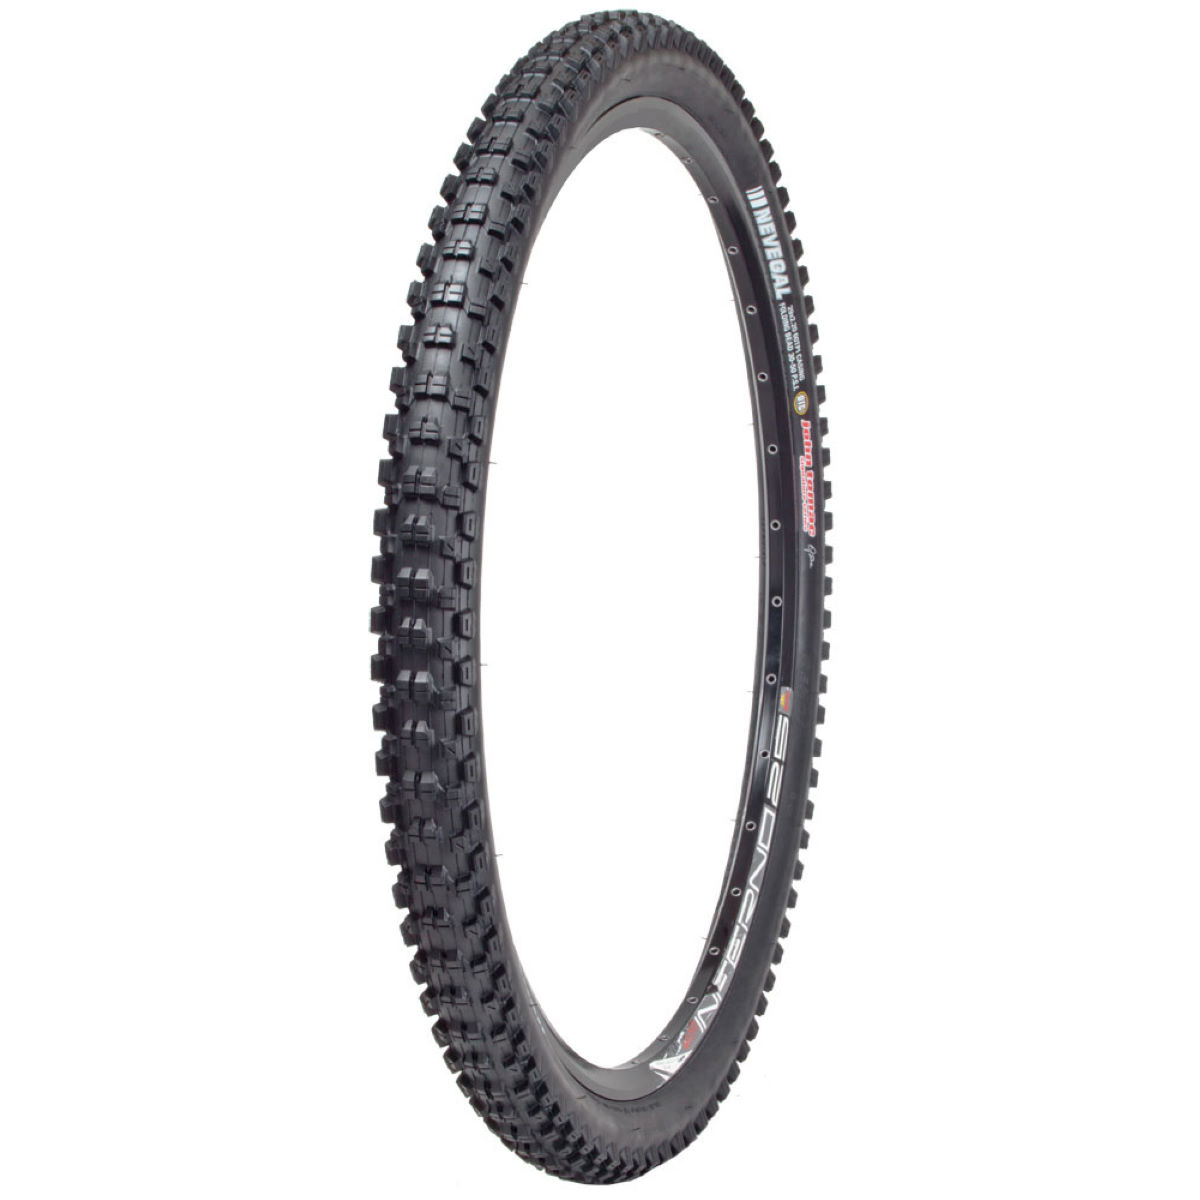 Kenda Nevegal Stick-E 2.1 Folding MTB Tyre